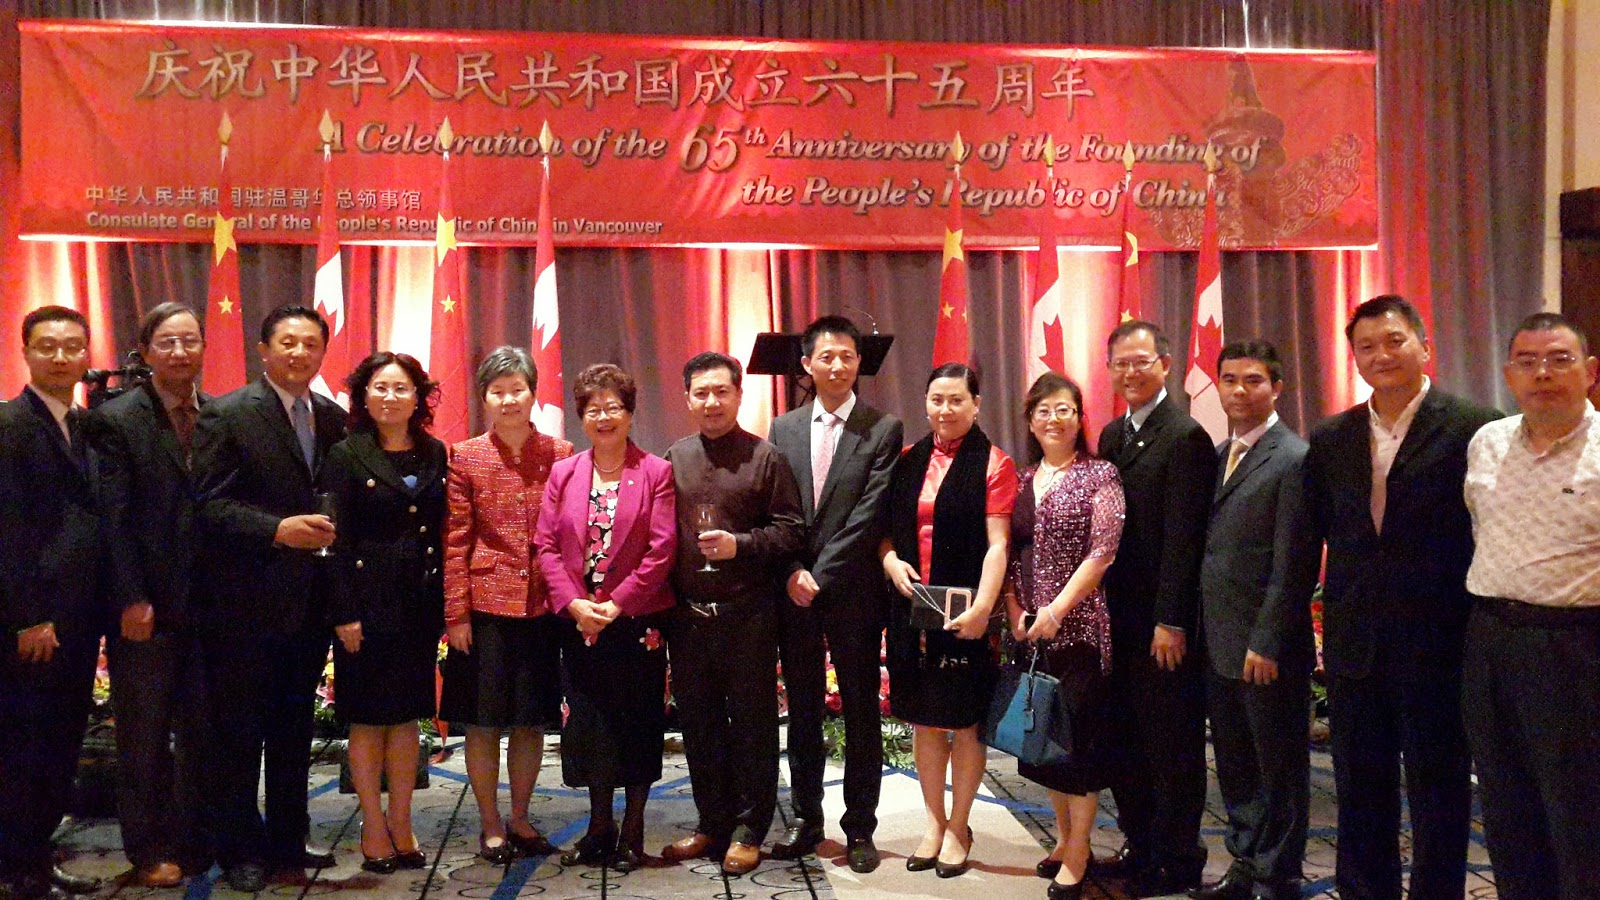 Burnaby-North MLA Richard T. Lee attended the People's Republic of China National Day